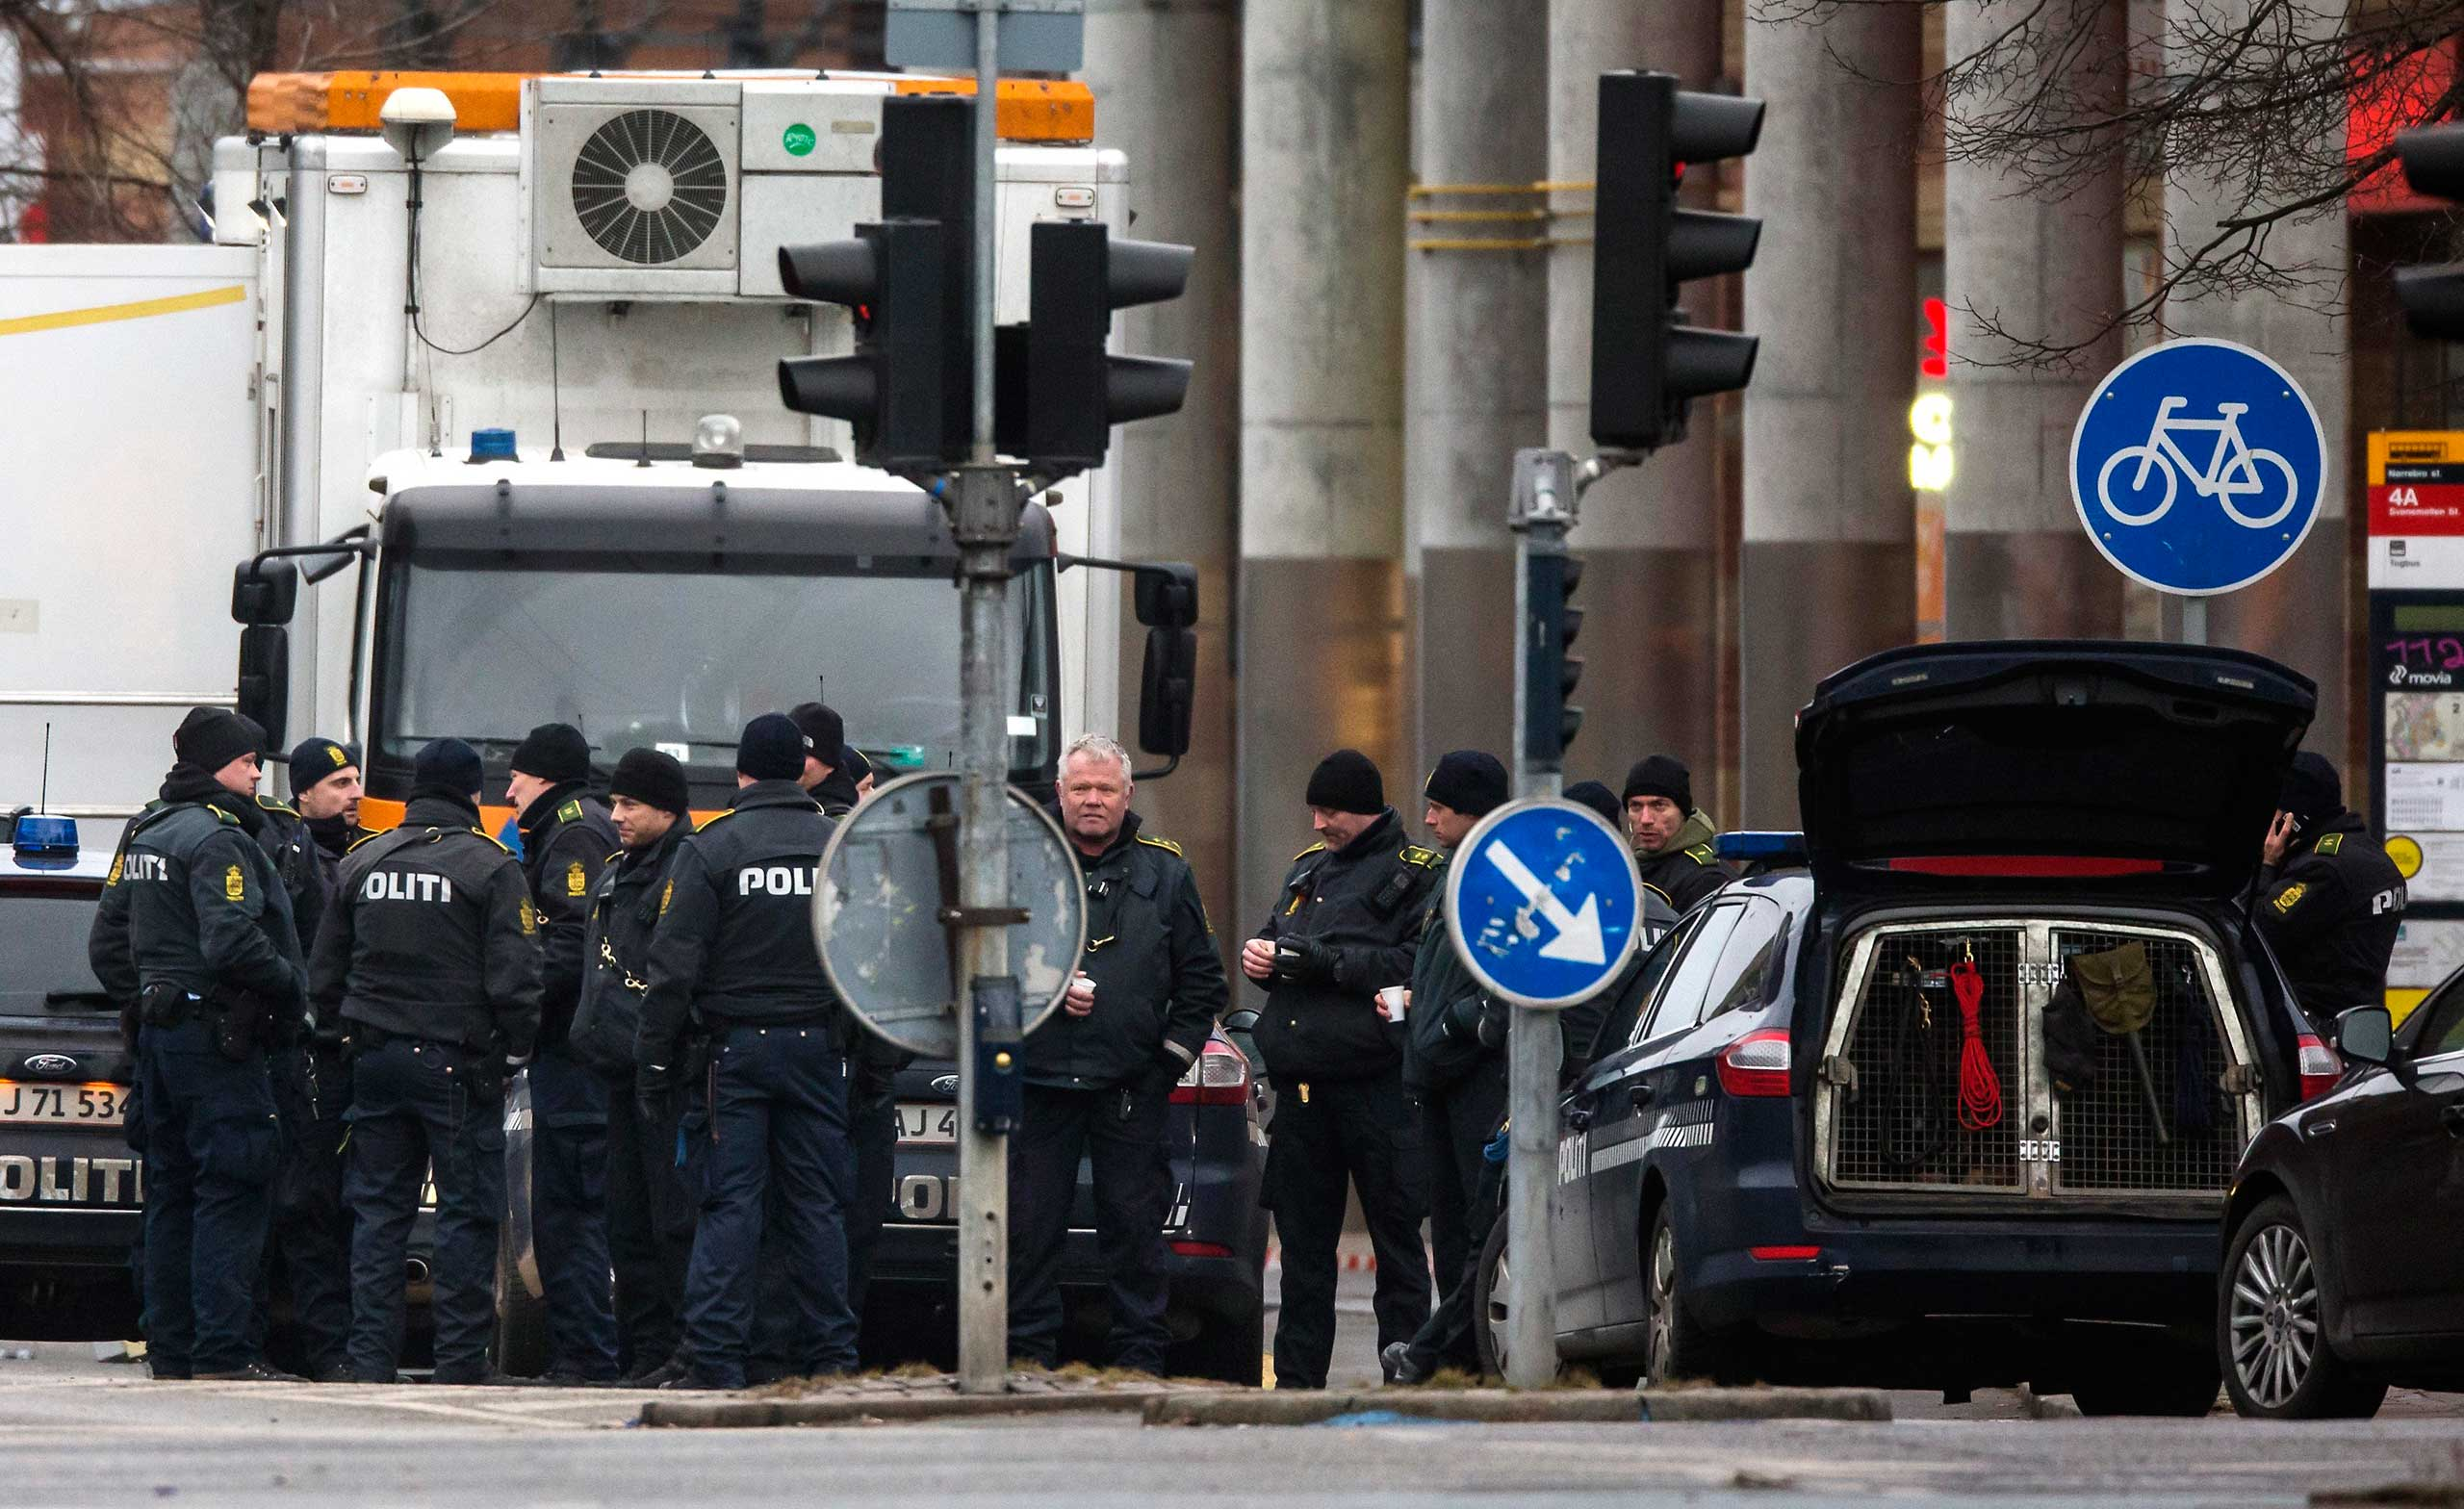 Police officers gather near the site where a man was killed by police, close to Norrebro Station, in Copenhagen, Feb. 15, 2015.